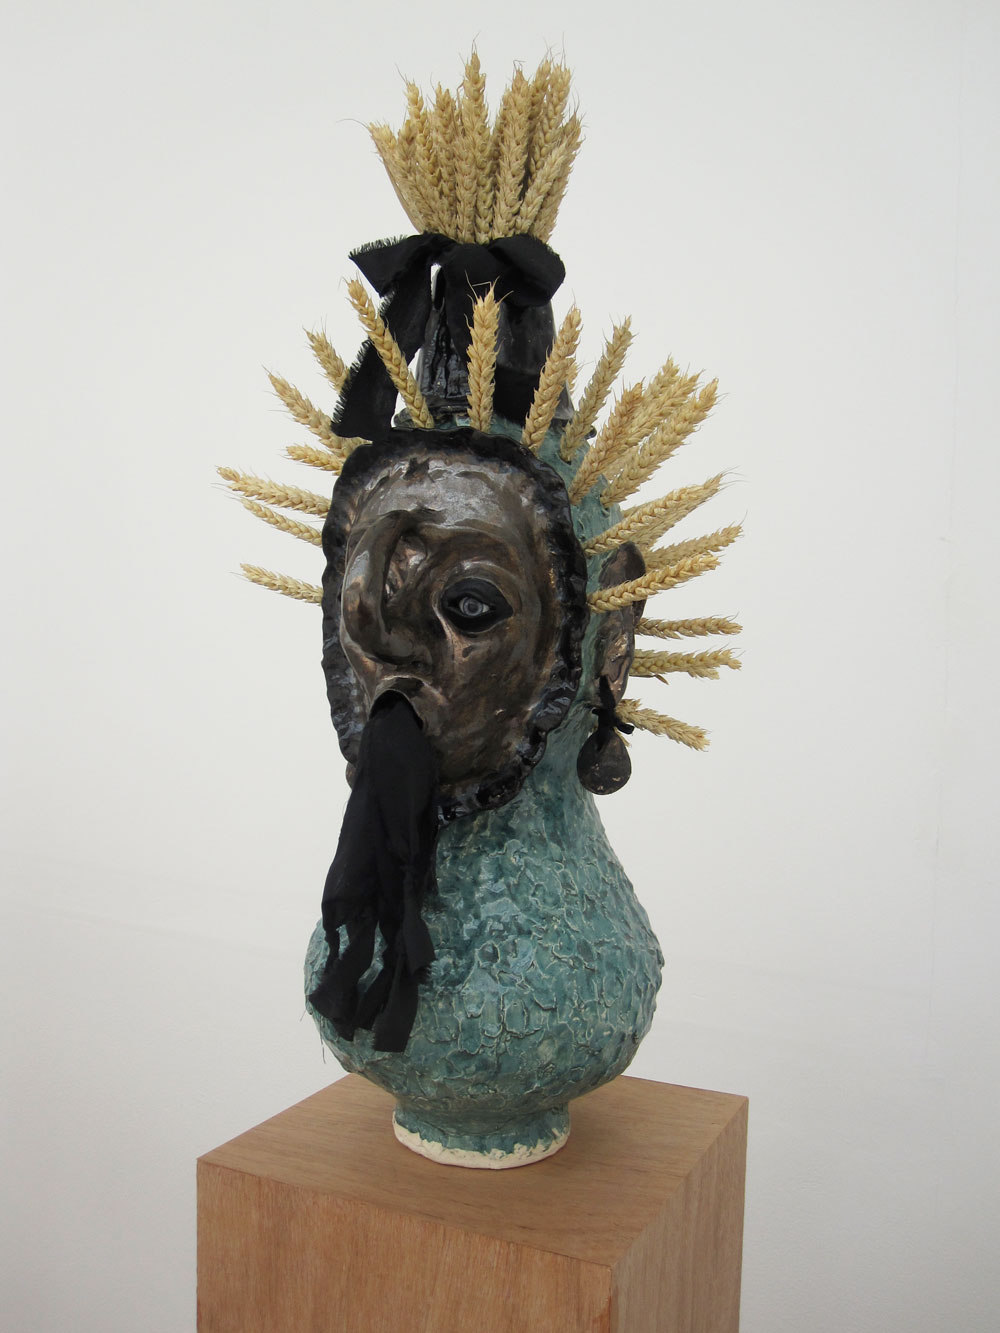 Jonathan Baldock, George(Boy), 2009, Ceramics cotton, glass eyes, clay ,corn, (h 1800mm x w.250mm x d250mm), Cell Project Space